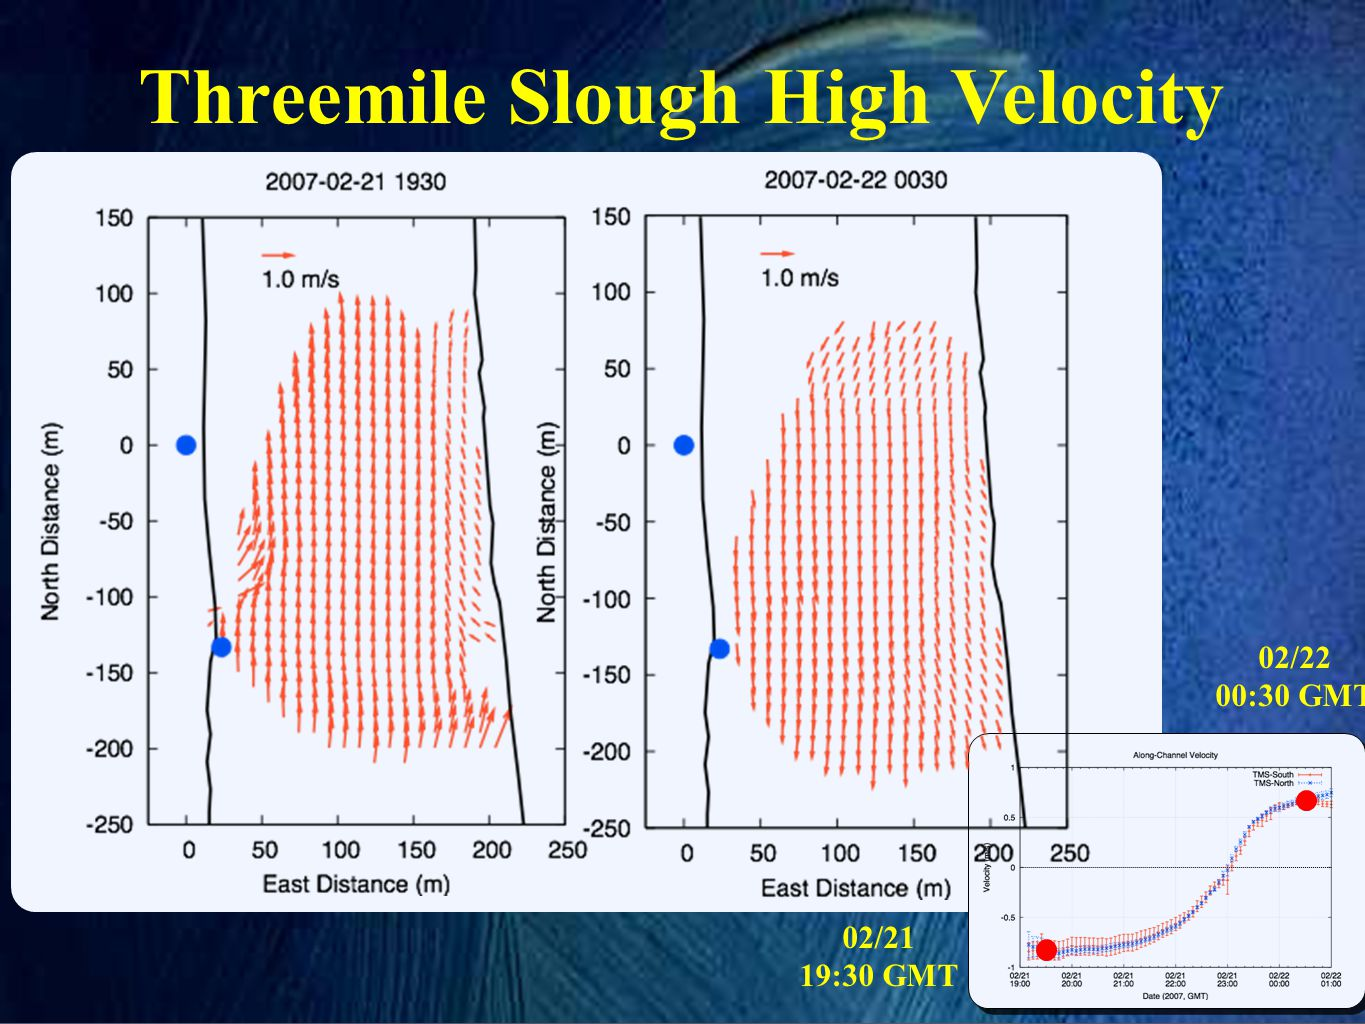 Threemile Slough High Velocity